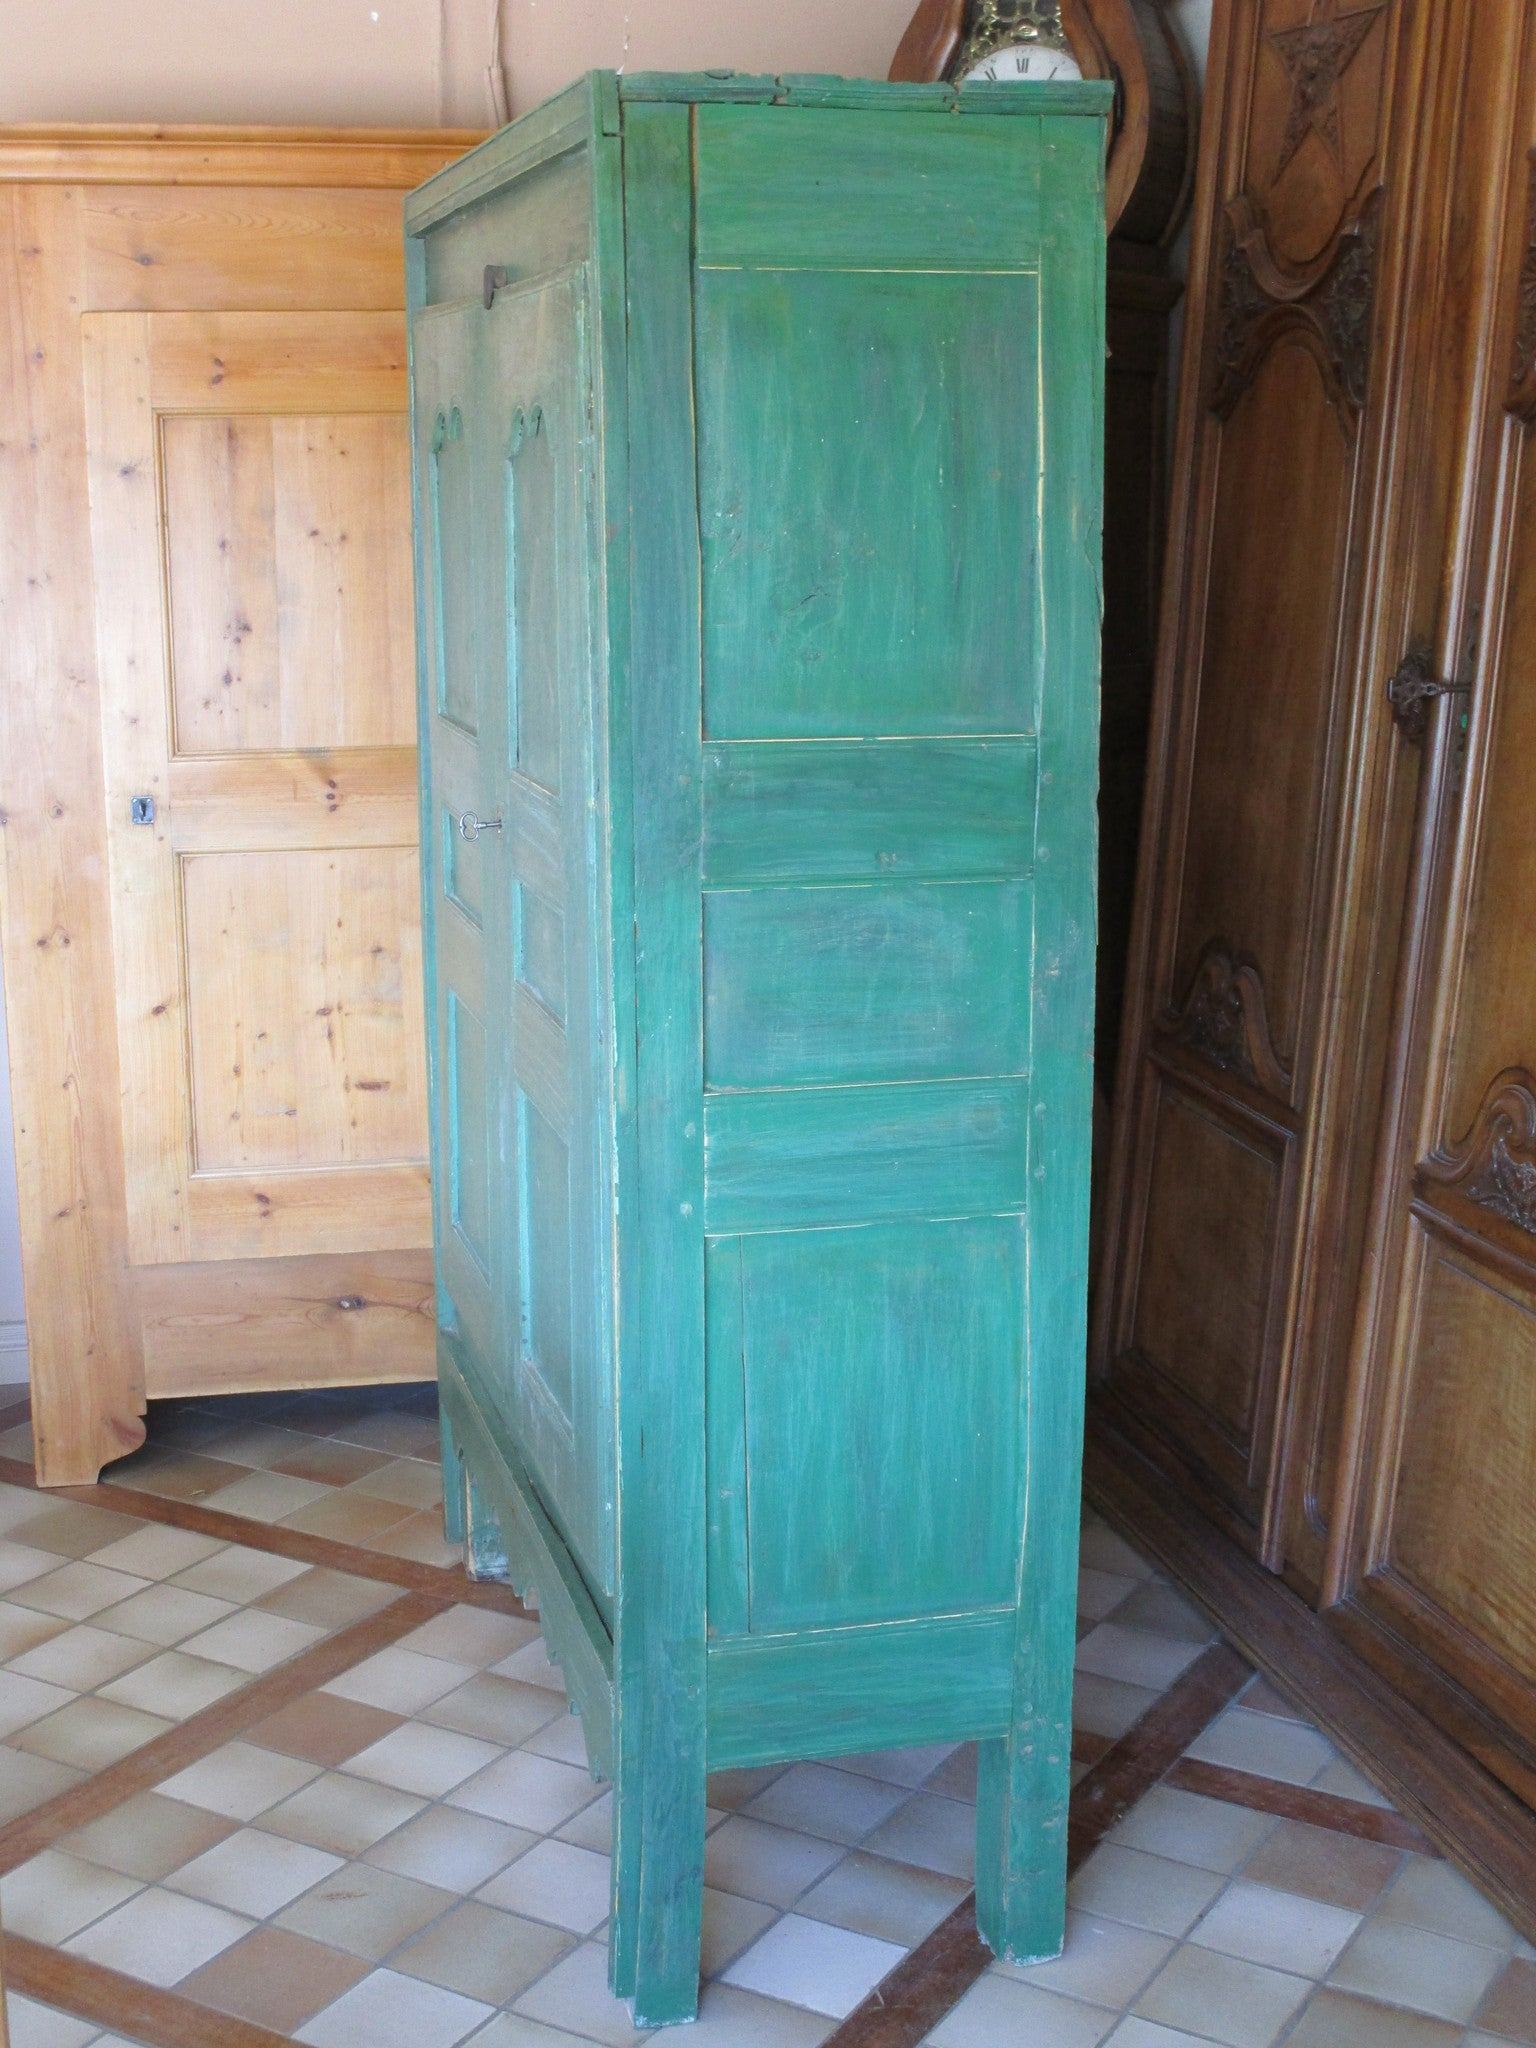 19th century armoire from the Hautes-Alpes